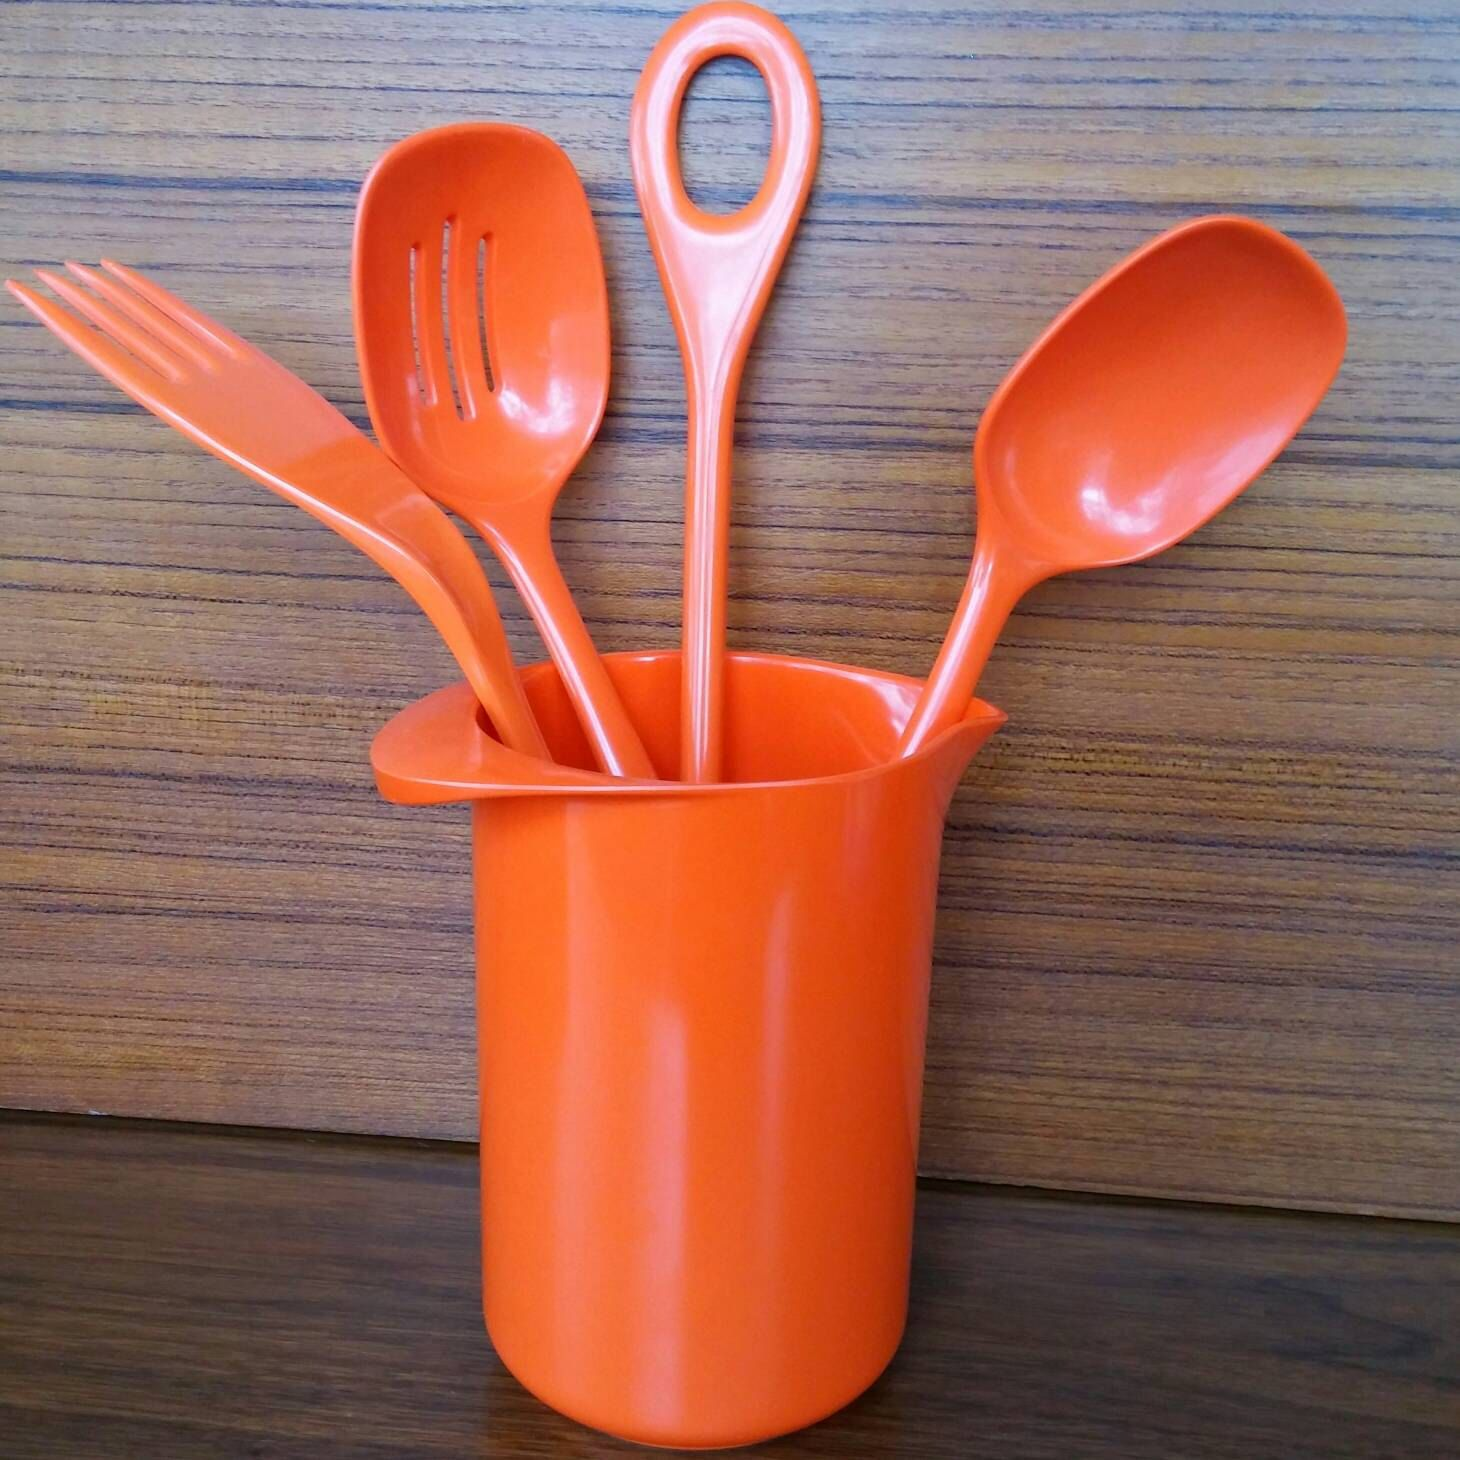 Find This Pin And More On Retro Vintage Kitchen. Items Similar To Rosti  Serving Utensils, Orange